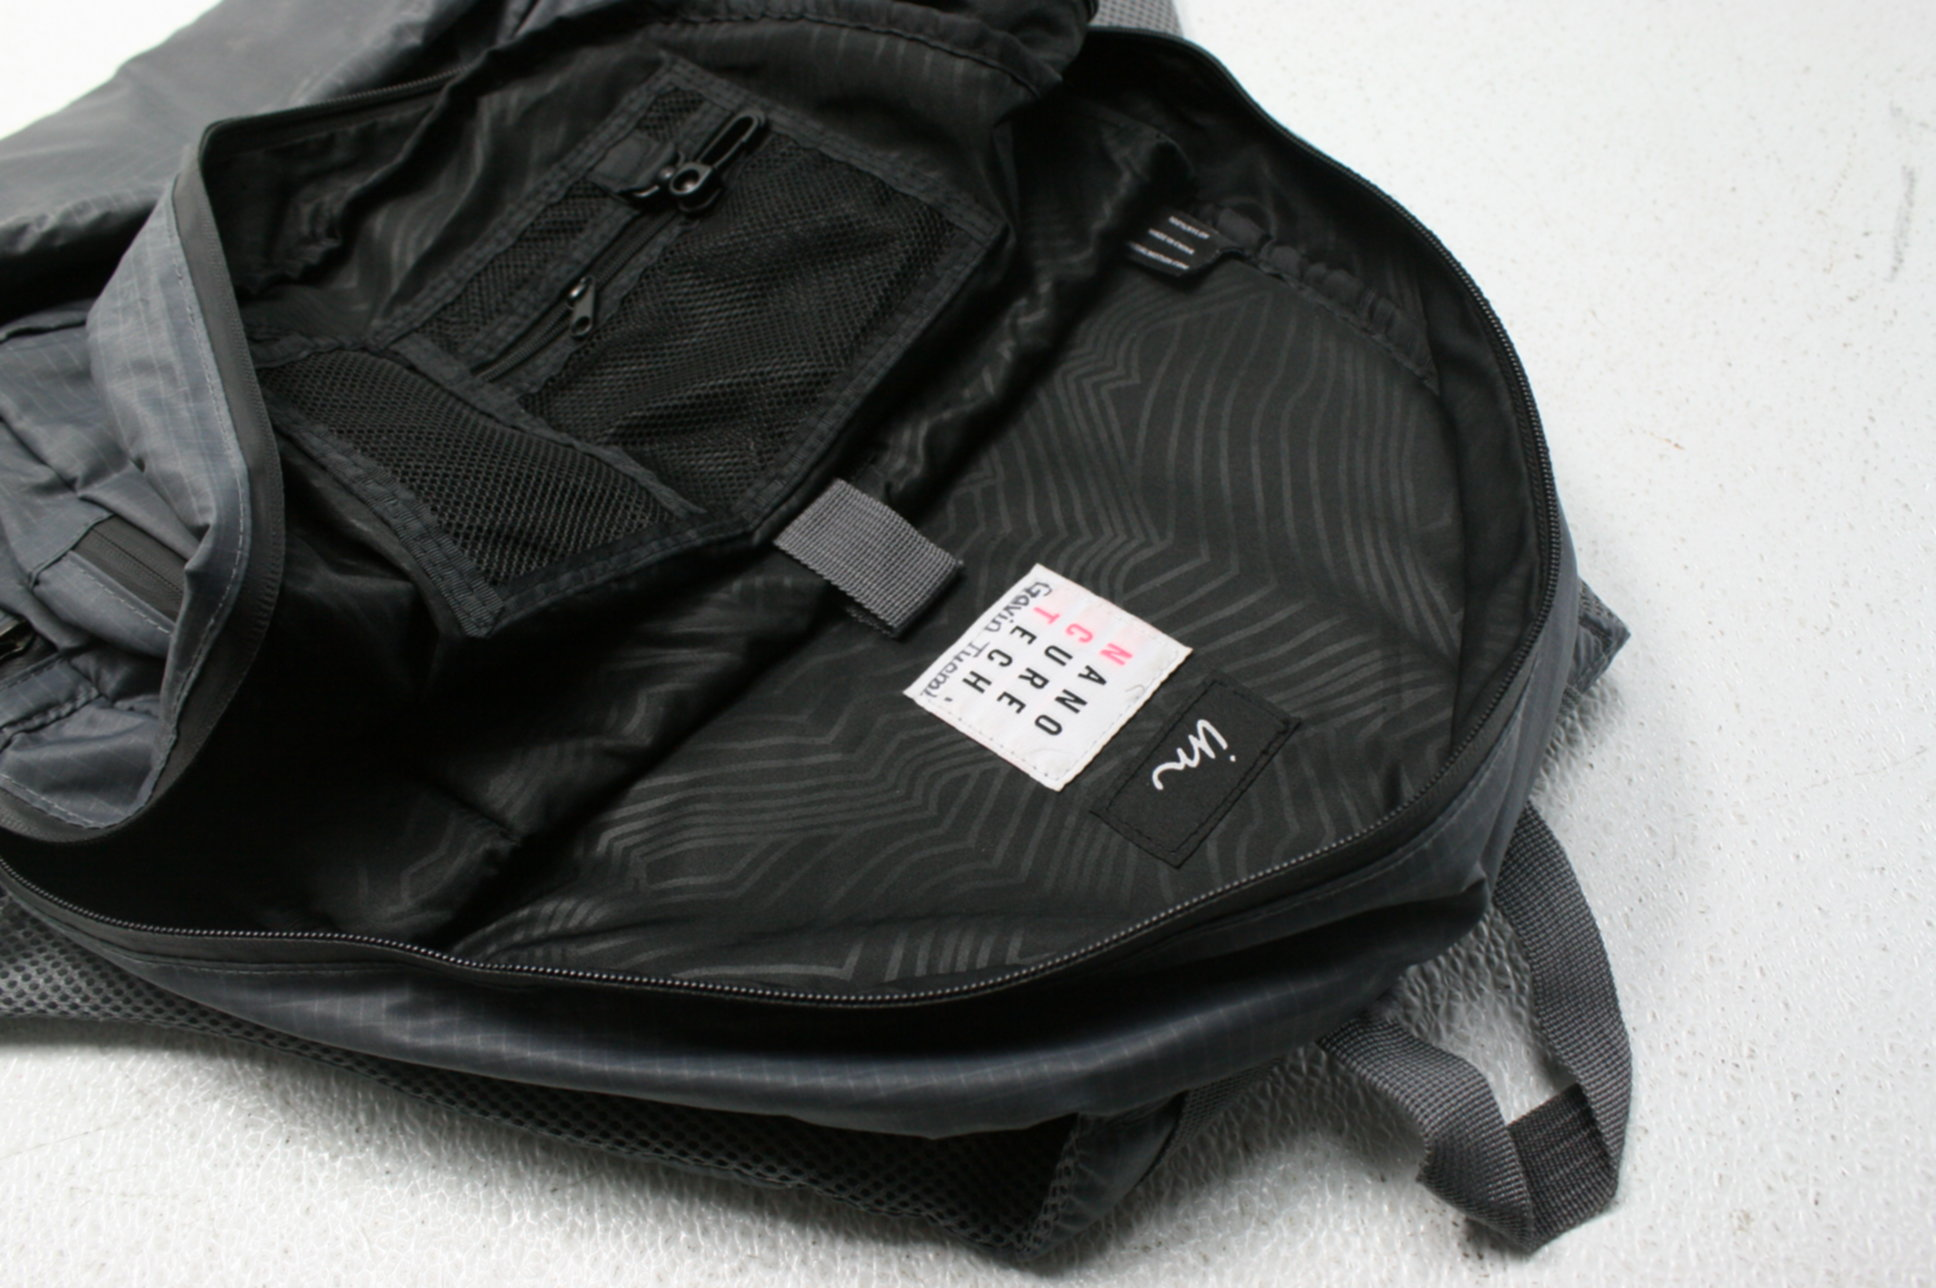 2b5f8c3c5b Imperial Motion NCT Nano Backpack Asphalt One Size with Self Healing ...